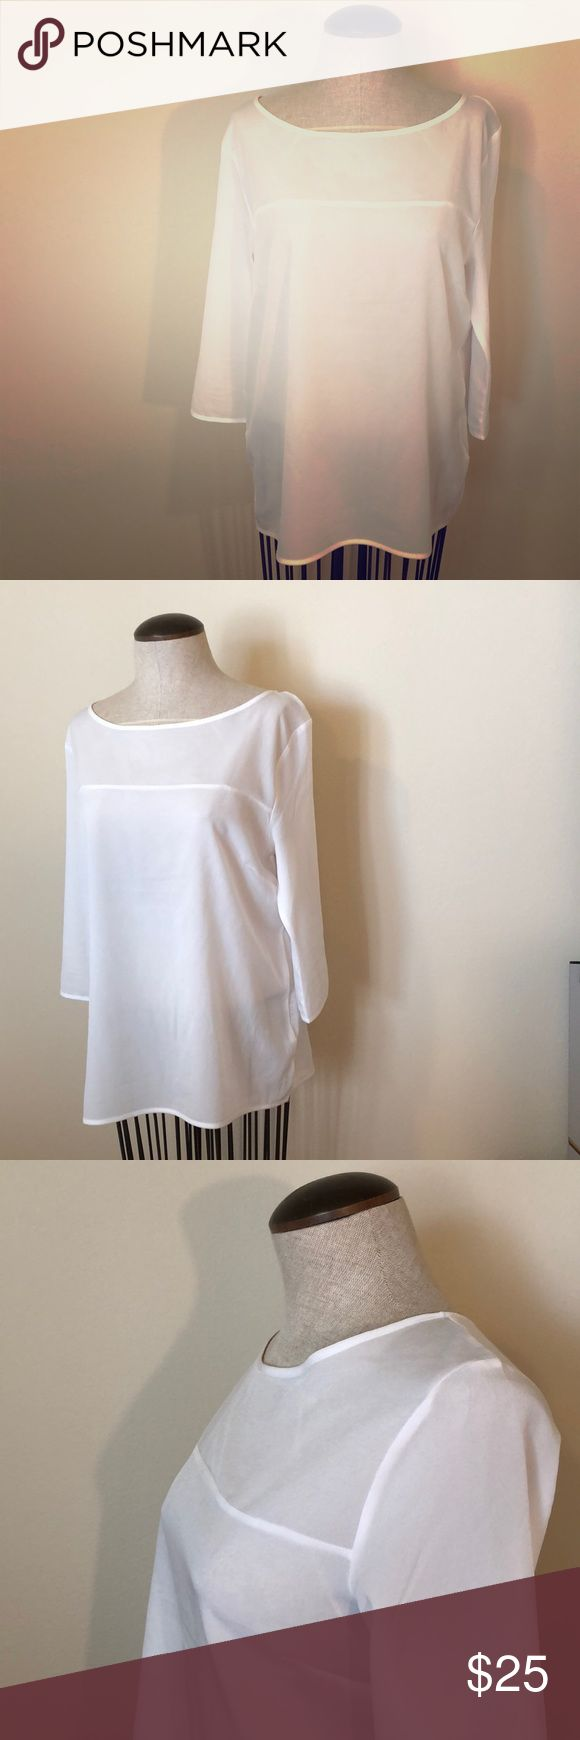 French Connection White Pull-Over Blouse French Connection White Pull-Over Blouse Size L, Delicate little details in this simple pull-over Blouse. Worn once - with a cami underneath, high waisted quilted skirt & black flats:)  Great for work & casual outfit combinations. French Connection Tops Blouses